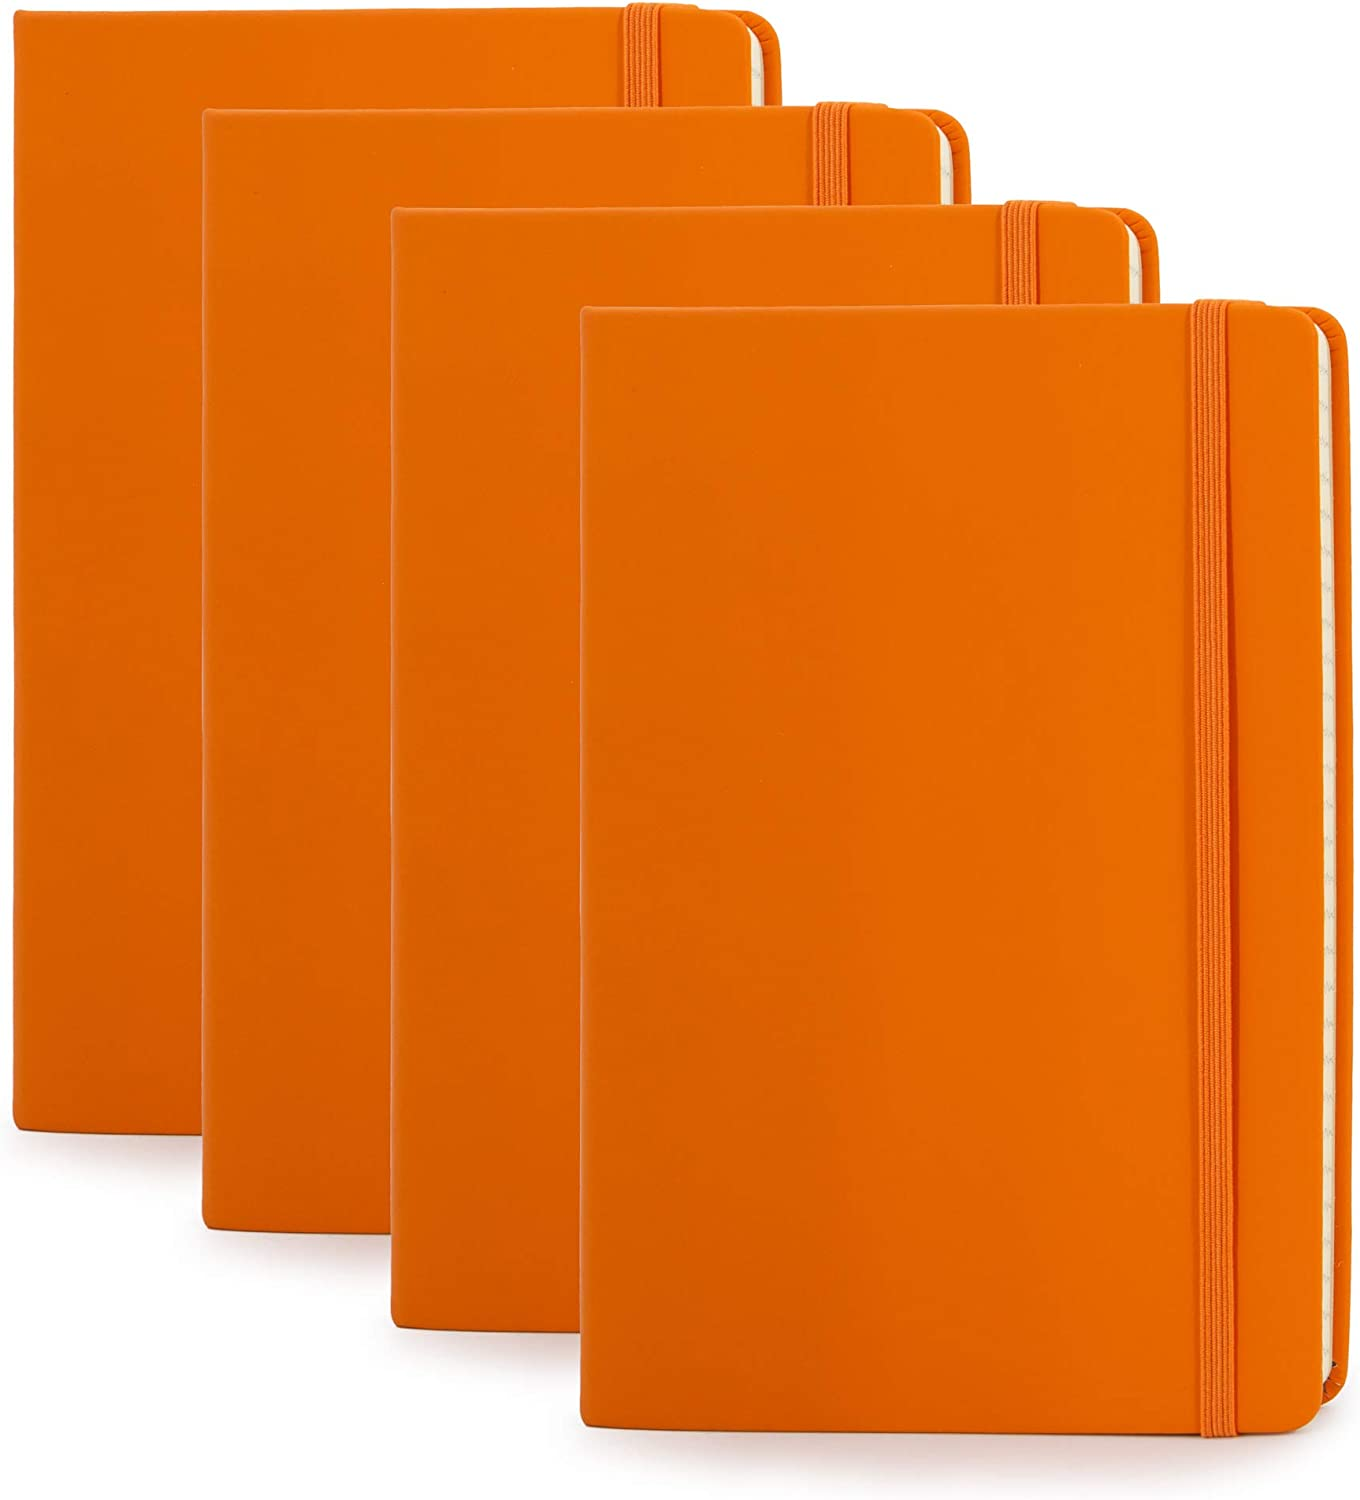 Simply Genius 4 Pack Challenge the lowest price A5 Hardcover Leatherette Writ to Journals National uniform free shipping